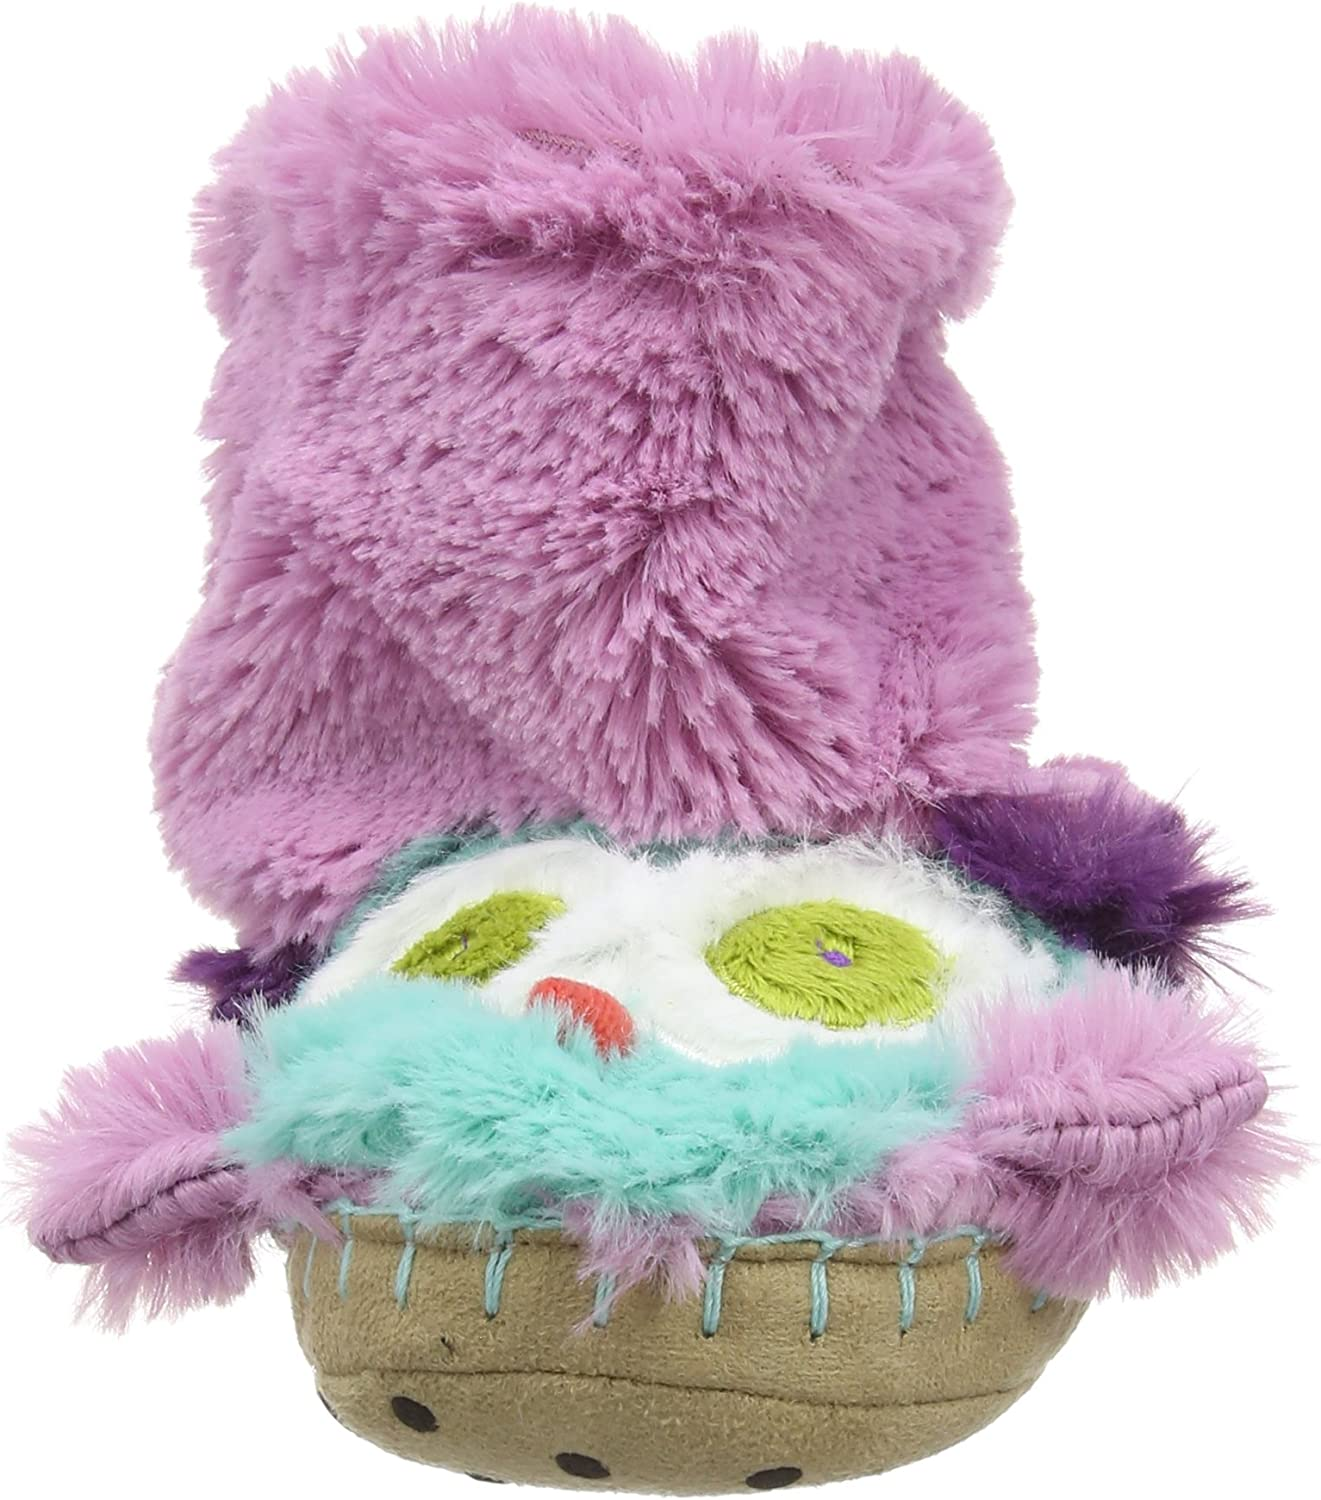 Owls Hatley Lbh Kids Slippers Chaussons Fille